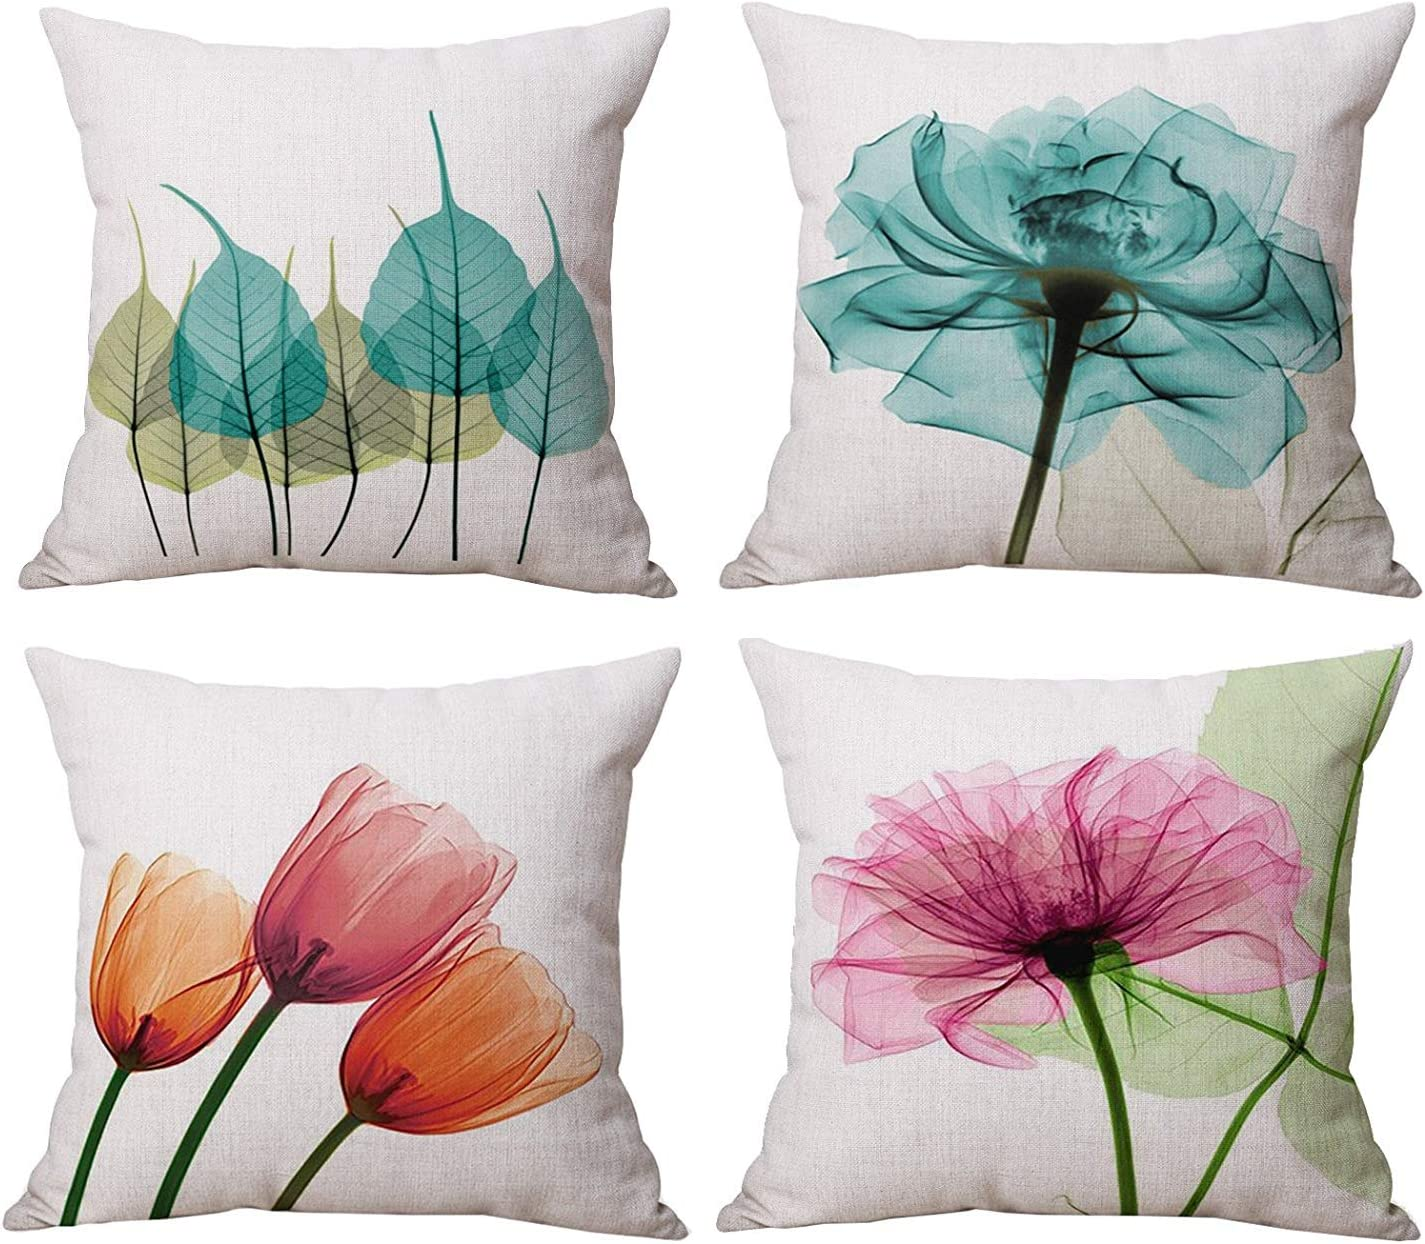 Watercolor Spring Summer Flower famous Throw Covers Discount is also underway Decorati Set Pillow